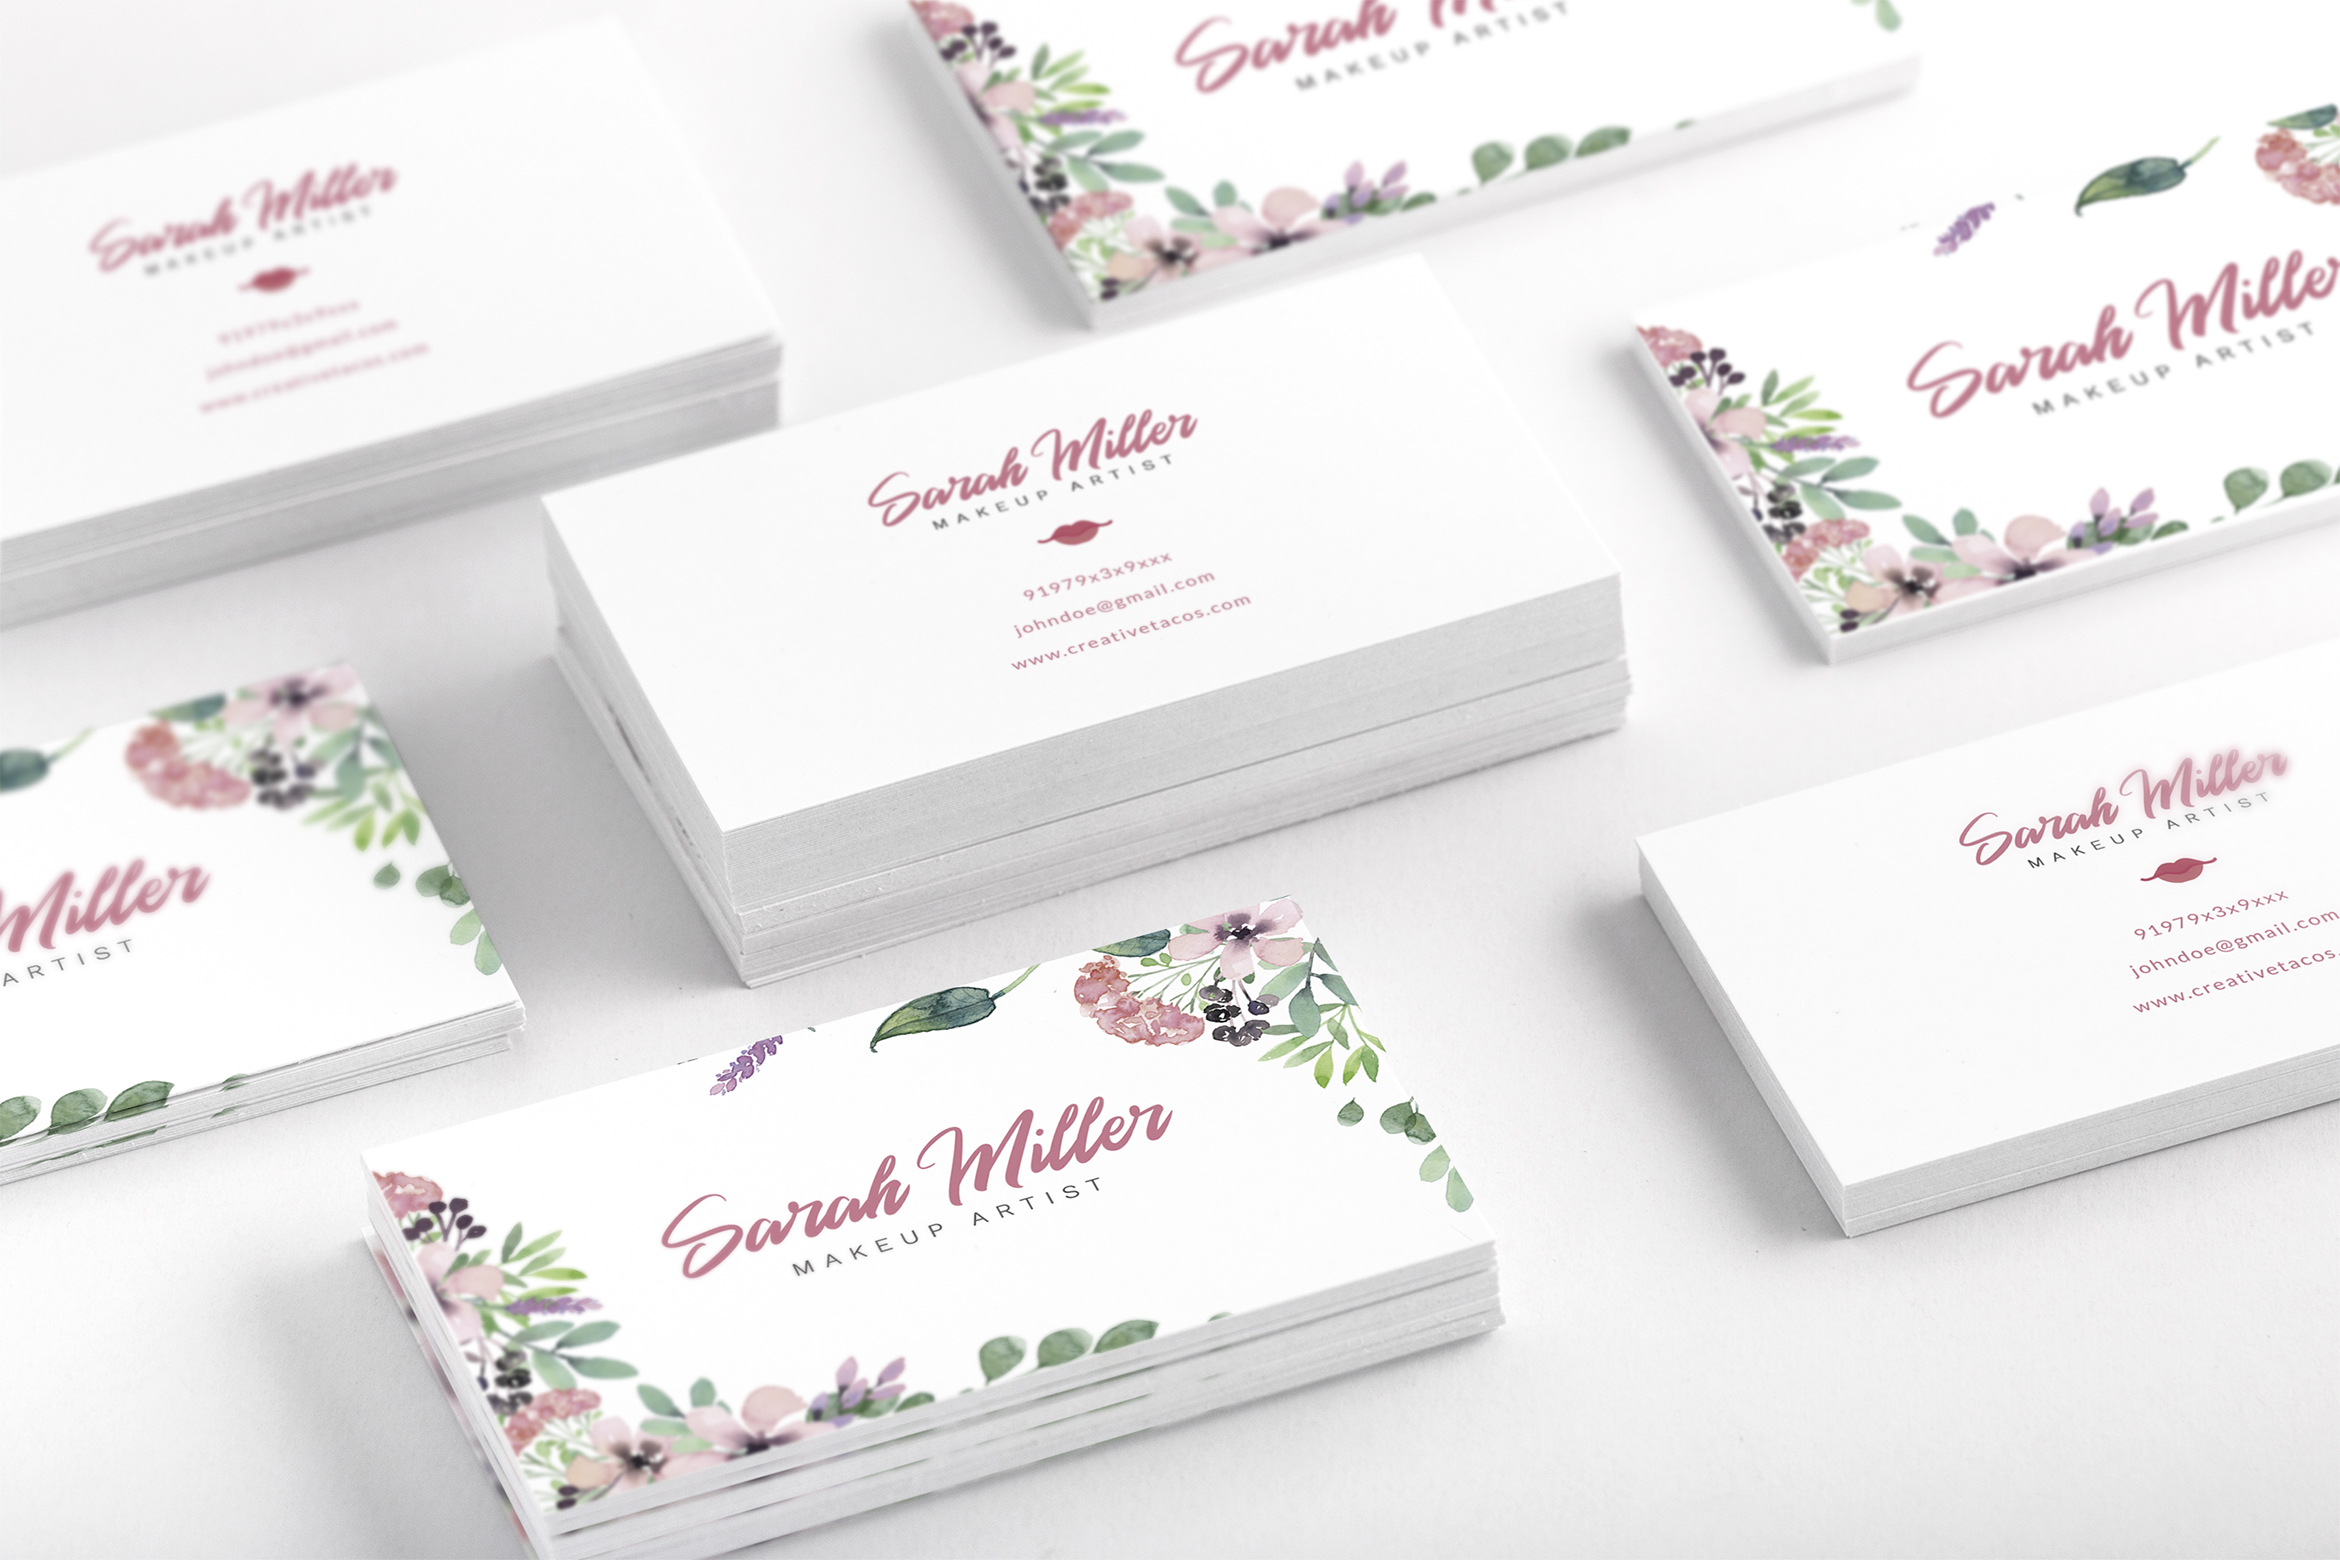 Floral Minimalist Business Card Template example image 3